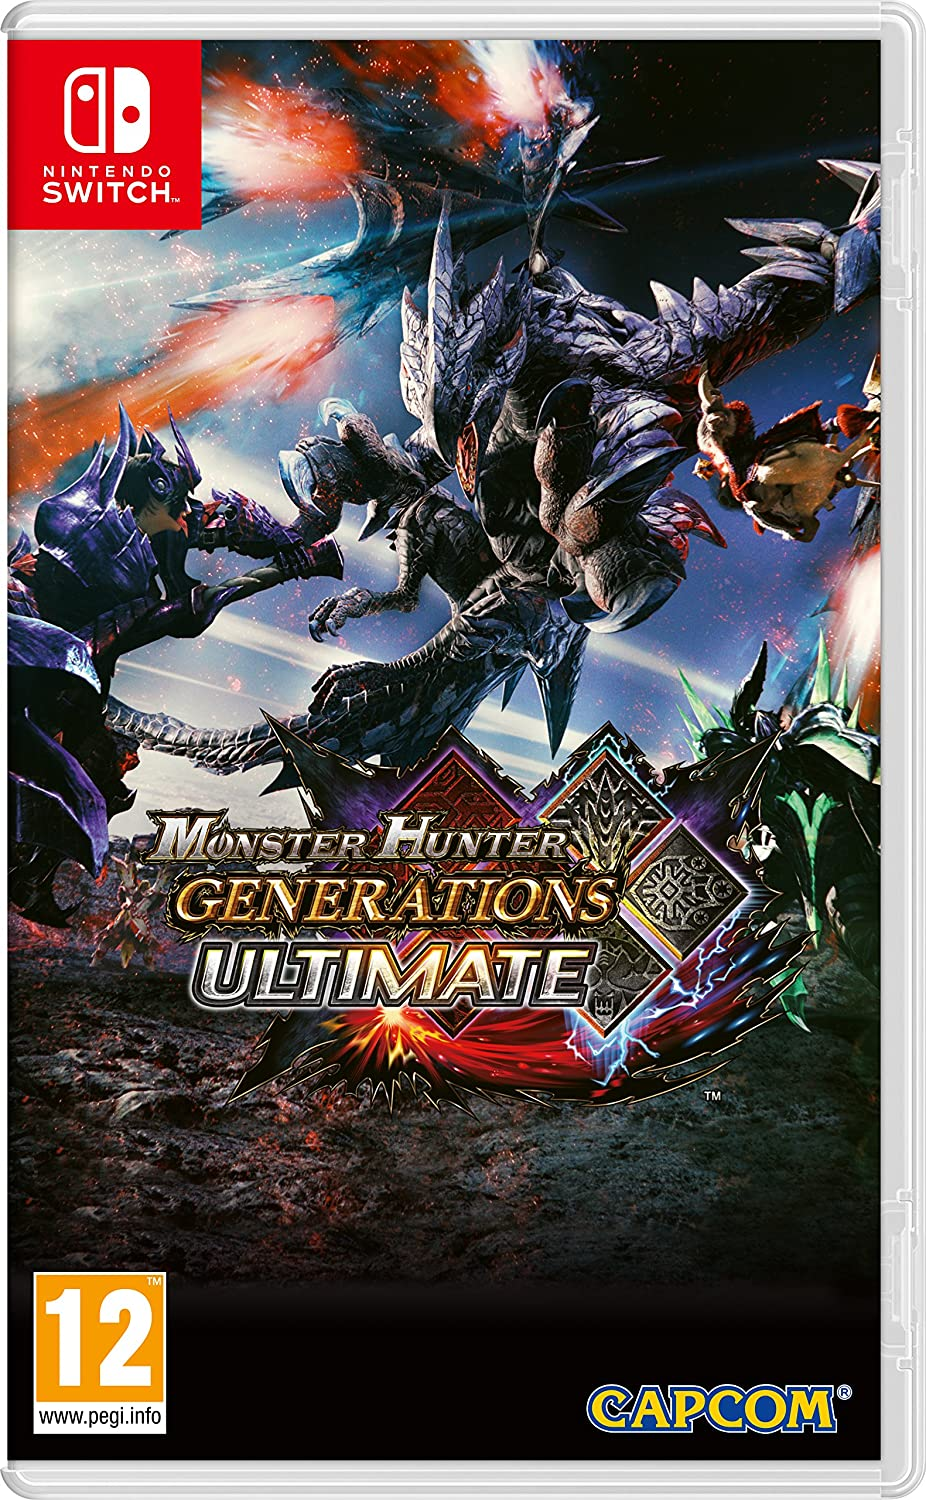 Monster Hunter Generations Ultimate - Edición Estándar